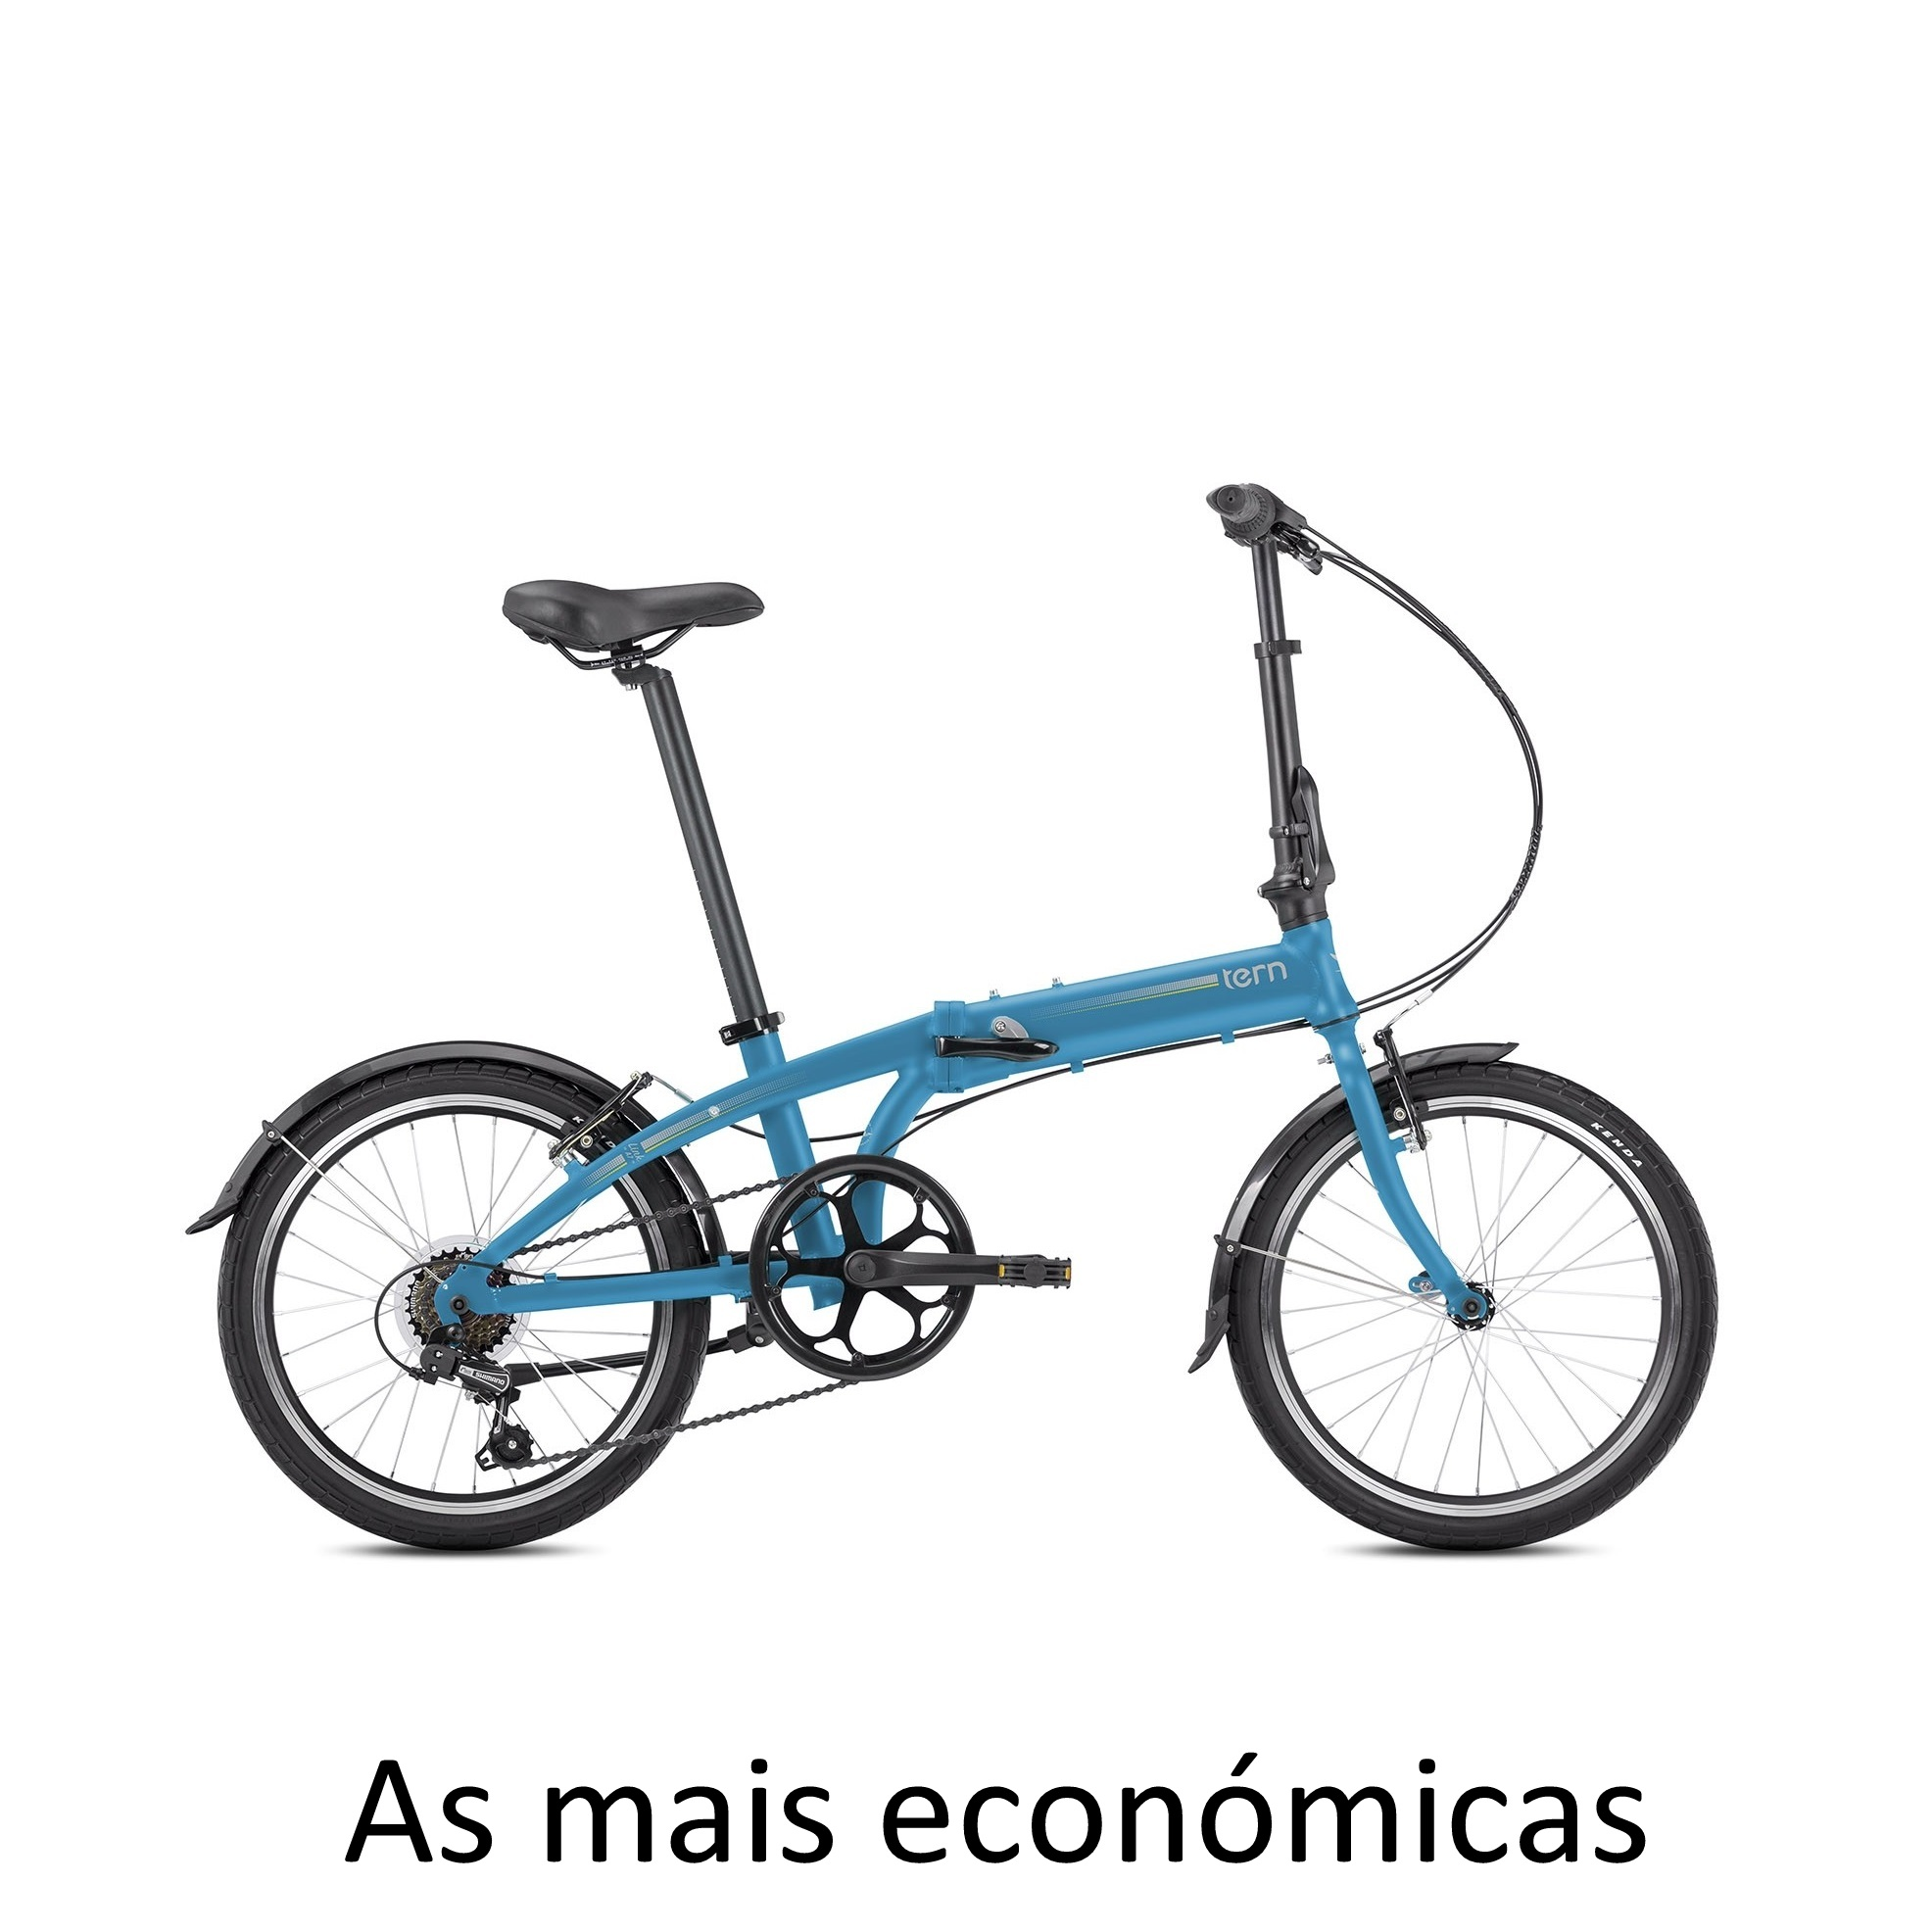 As mais económicas